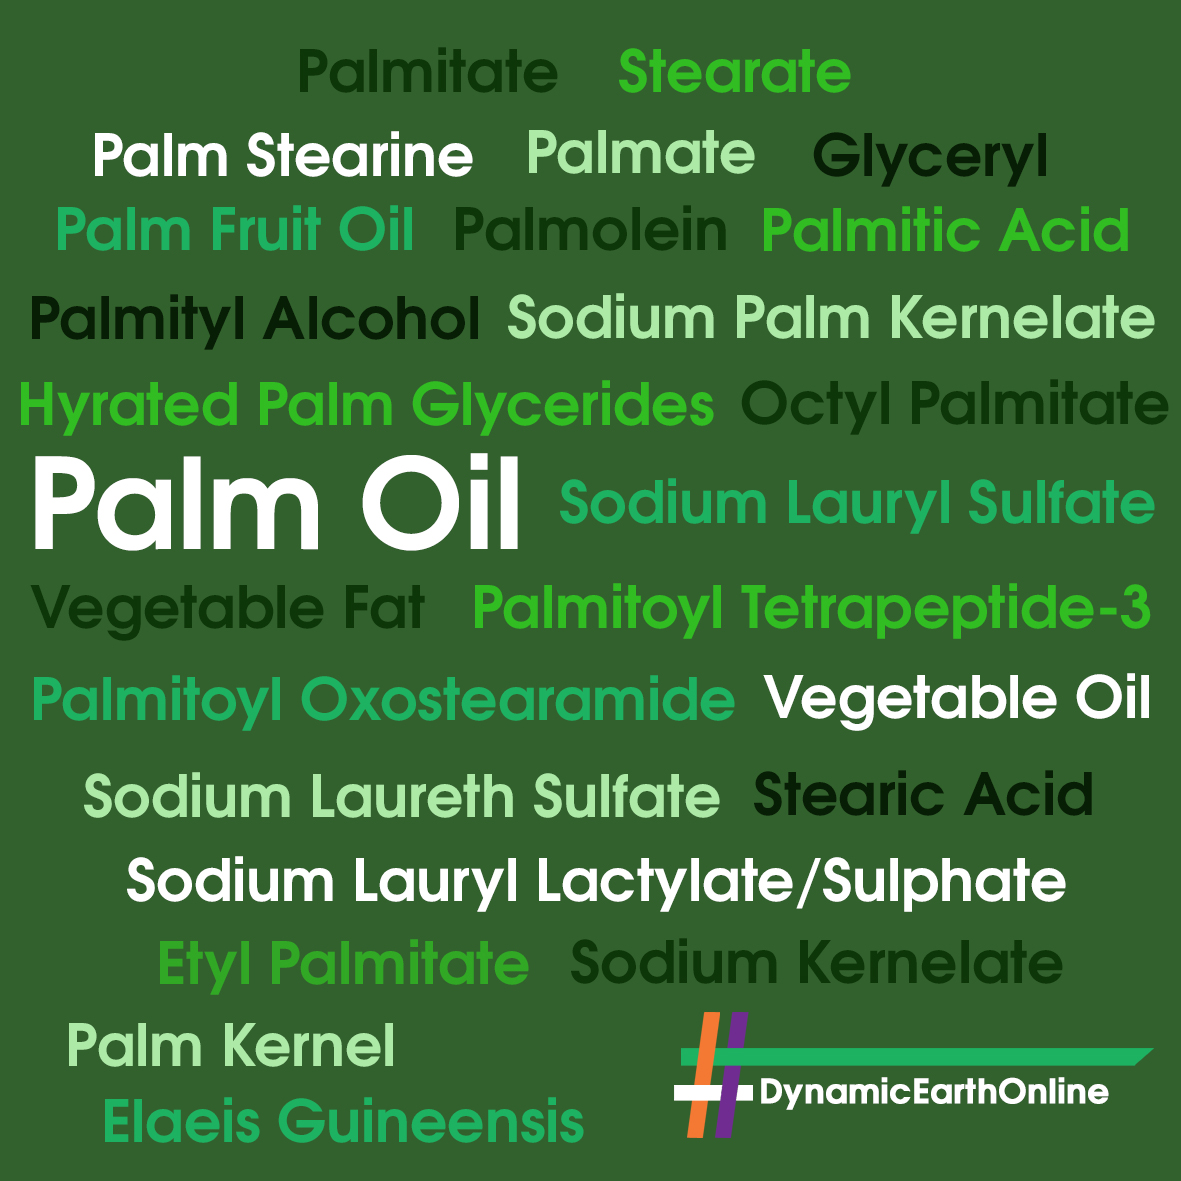 Other names for palm oil